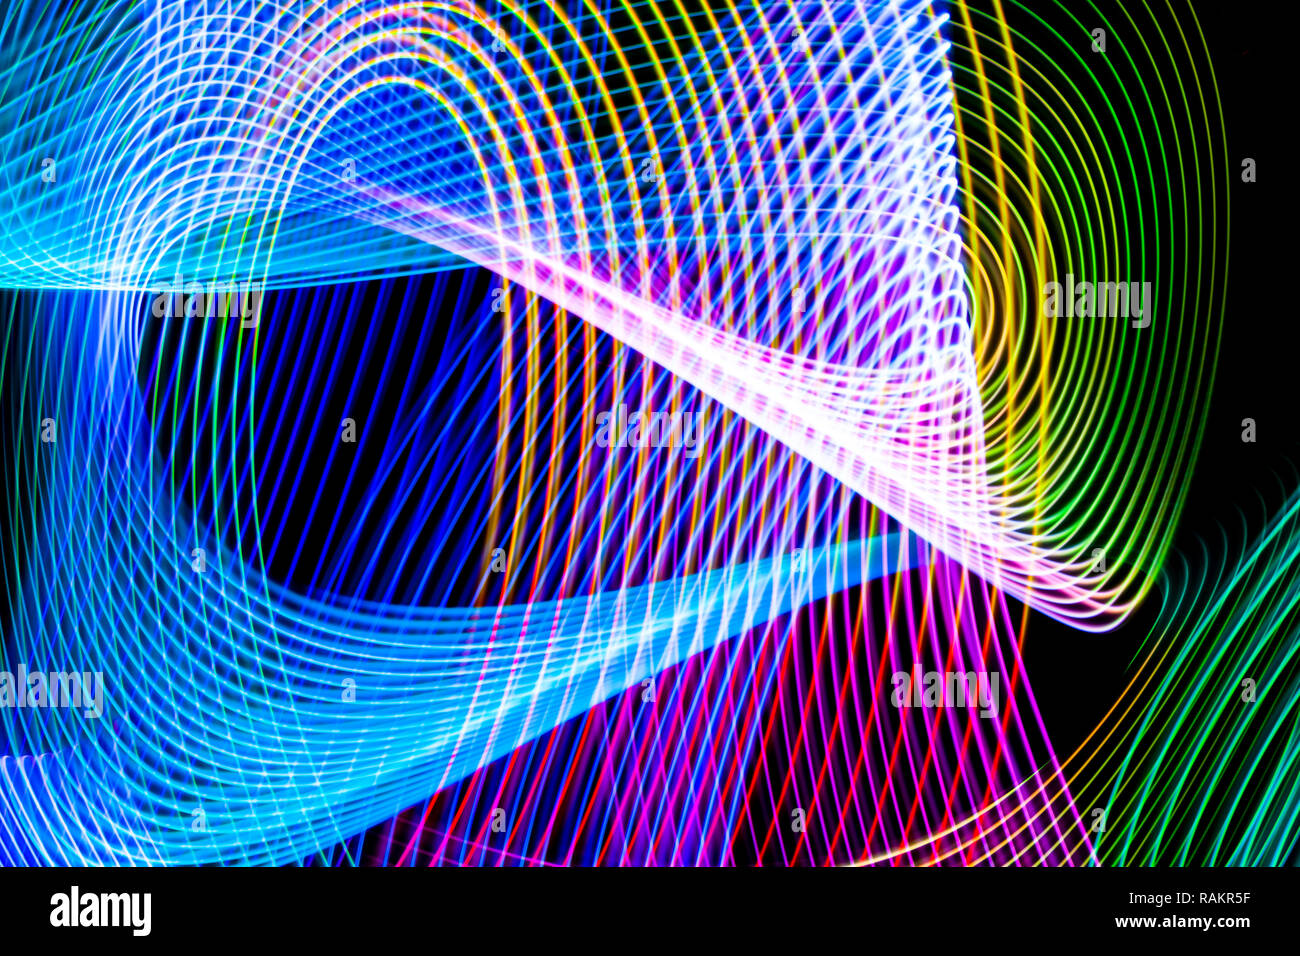 Abstract Background Of Colored Red Pink Yellow Green And Blue Stripes The Concept Of Geometric Aesthetics Stock Photo Alamy